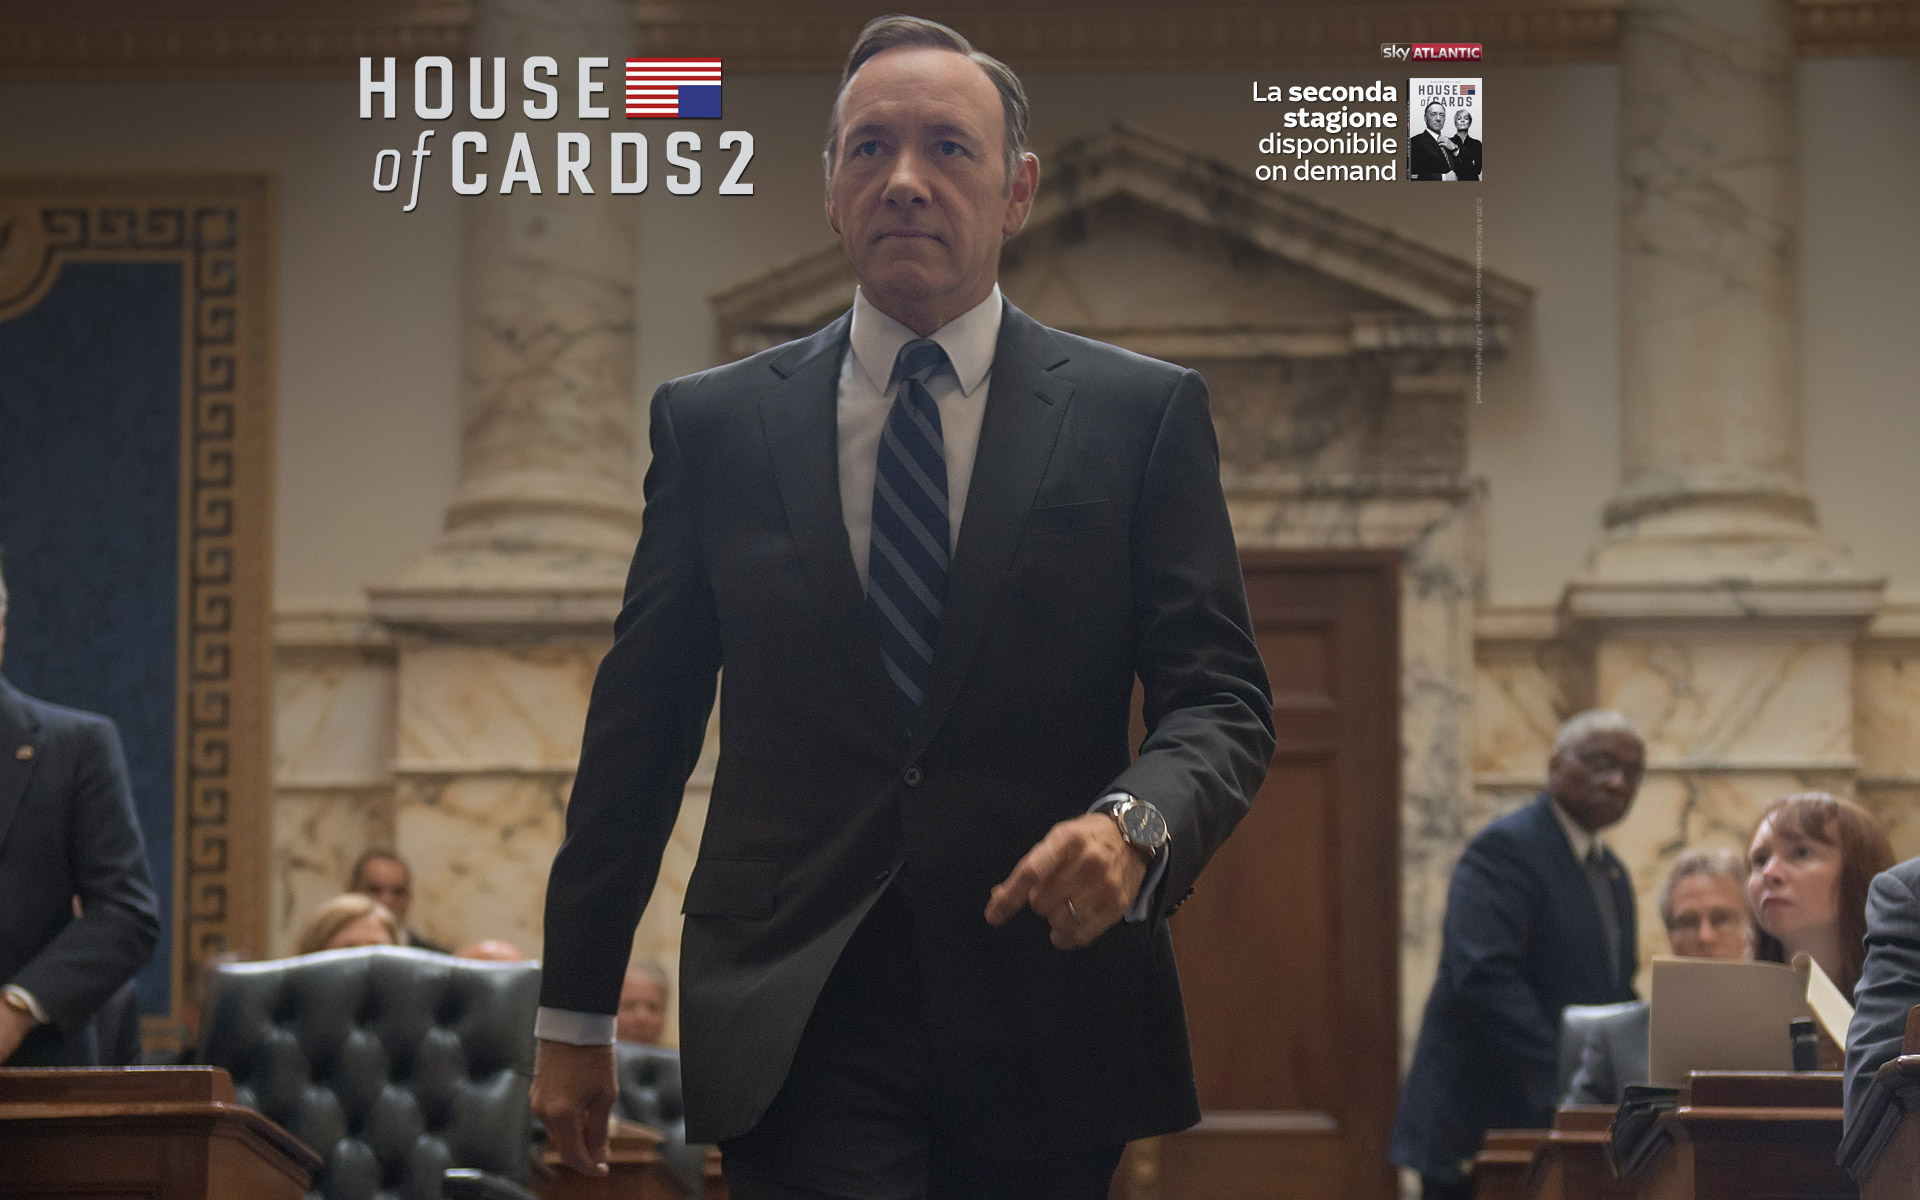 House of Cards 2 Sky Online